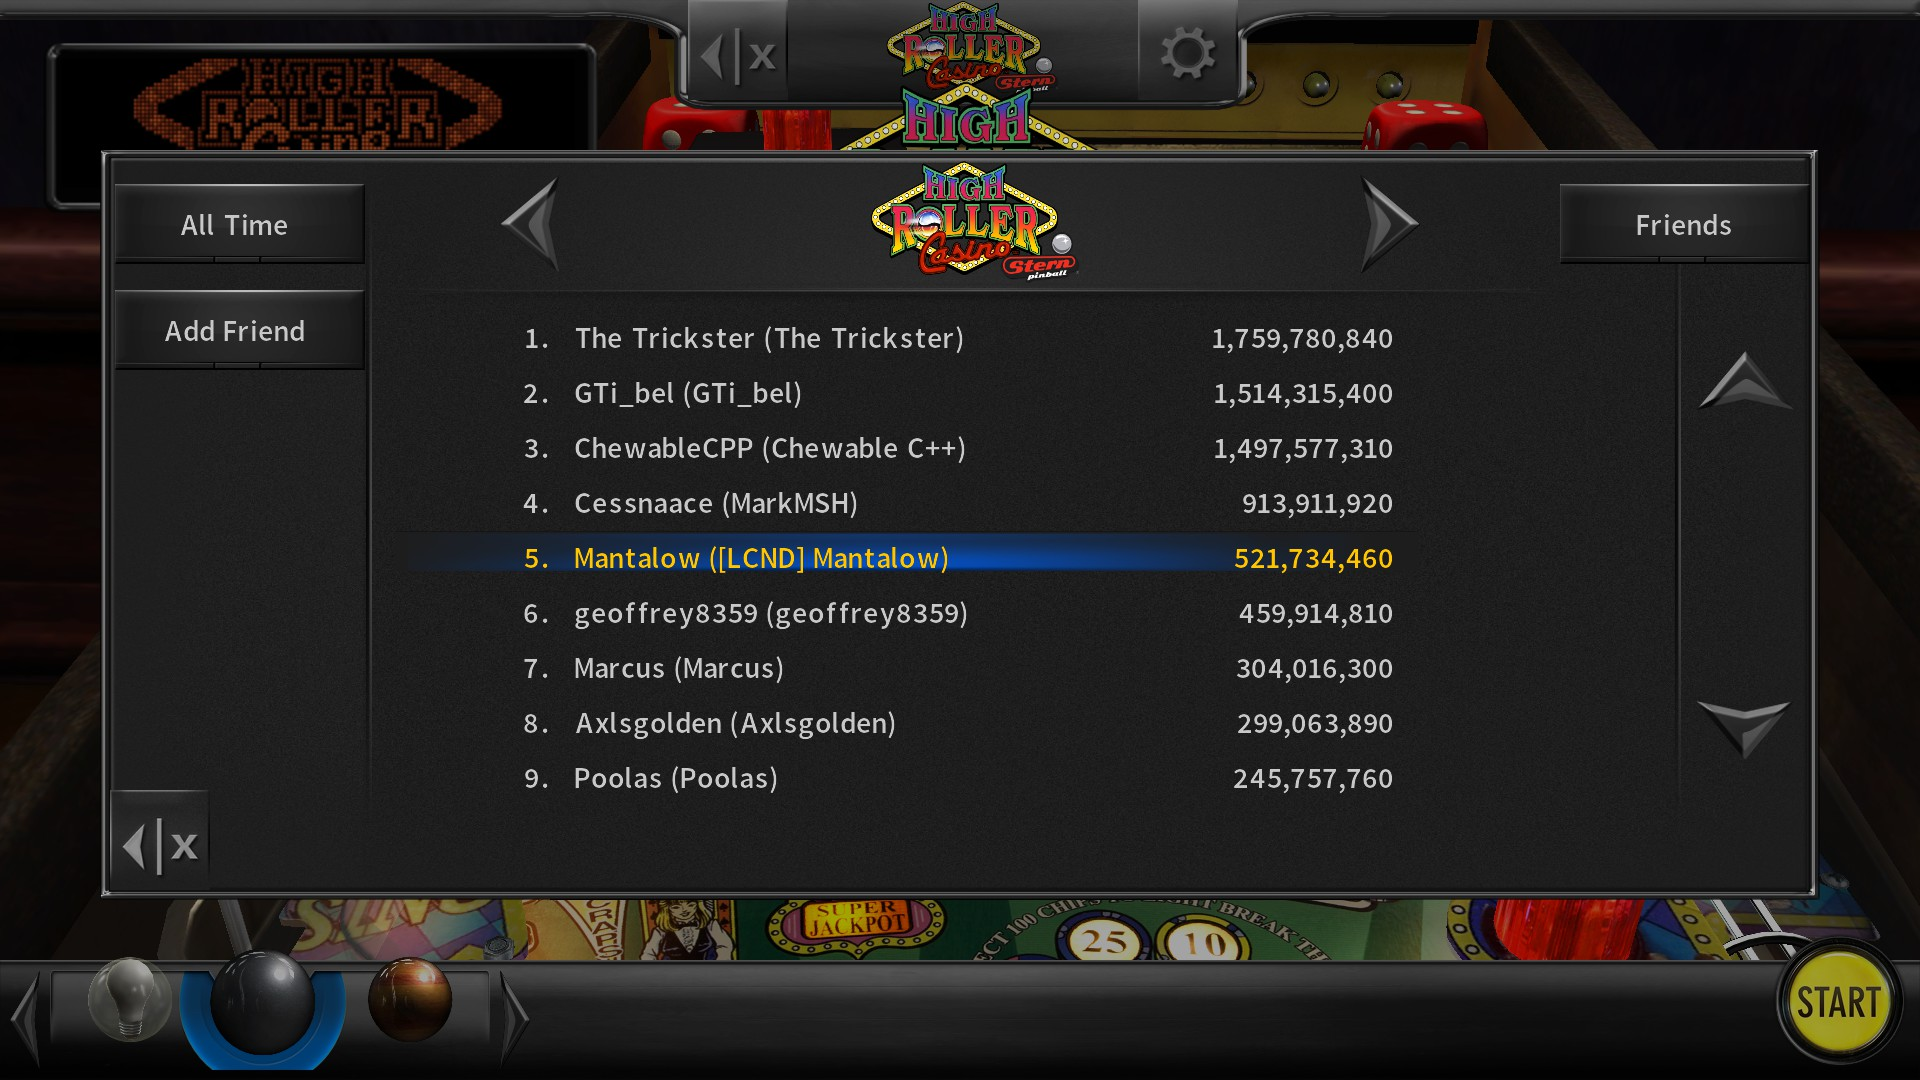 Mantalow: Pinball Arcade: High Roller Casino (PC) 521,734,460 points on 2016-11-19 15:13:02